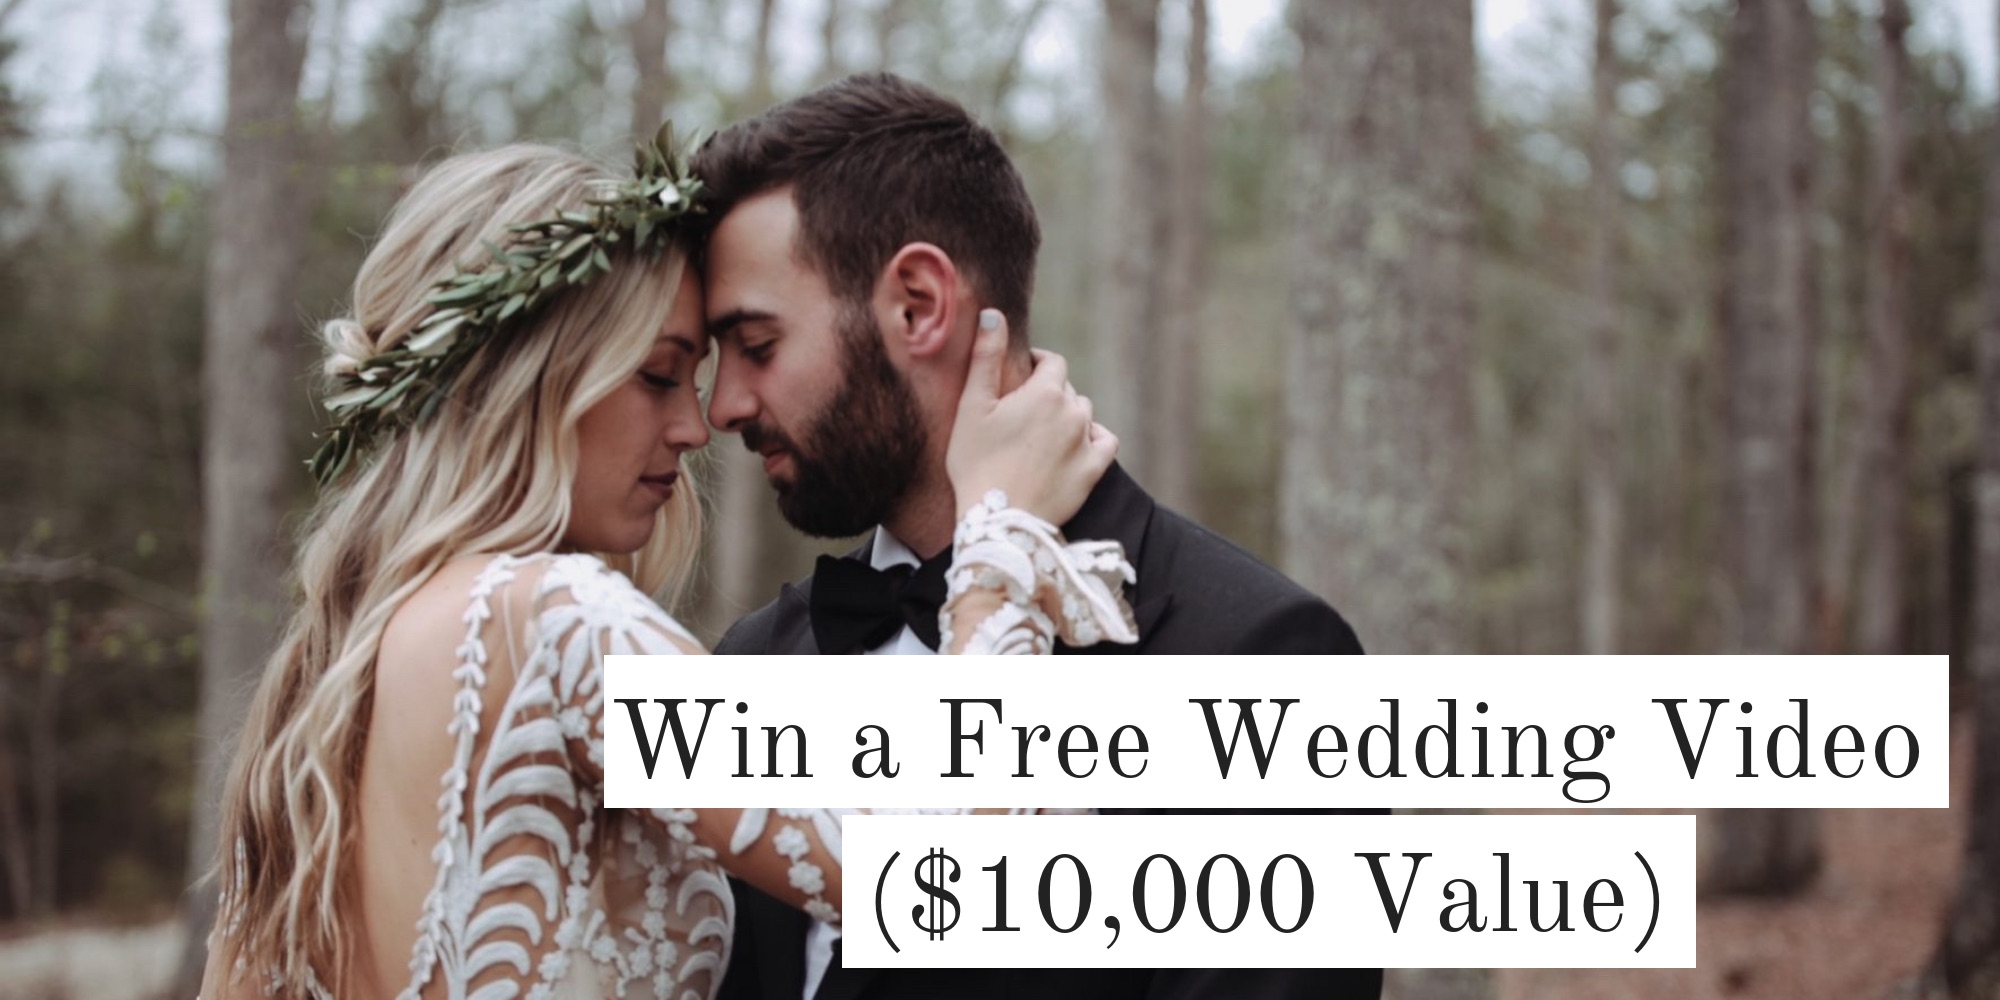 Win A Free Wedding Film Valued At $10,000